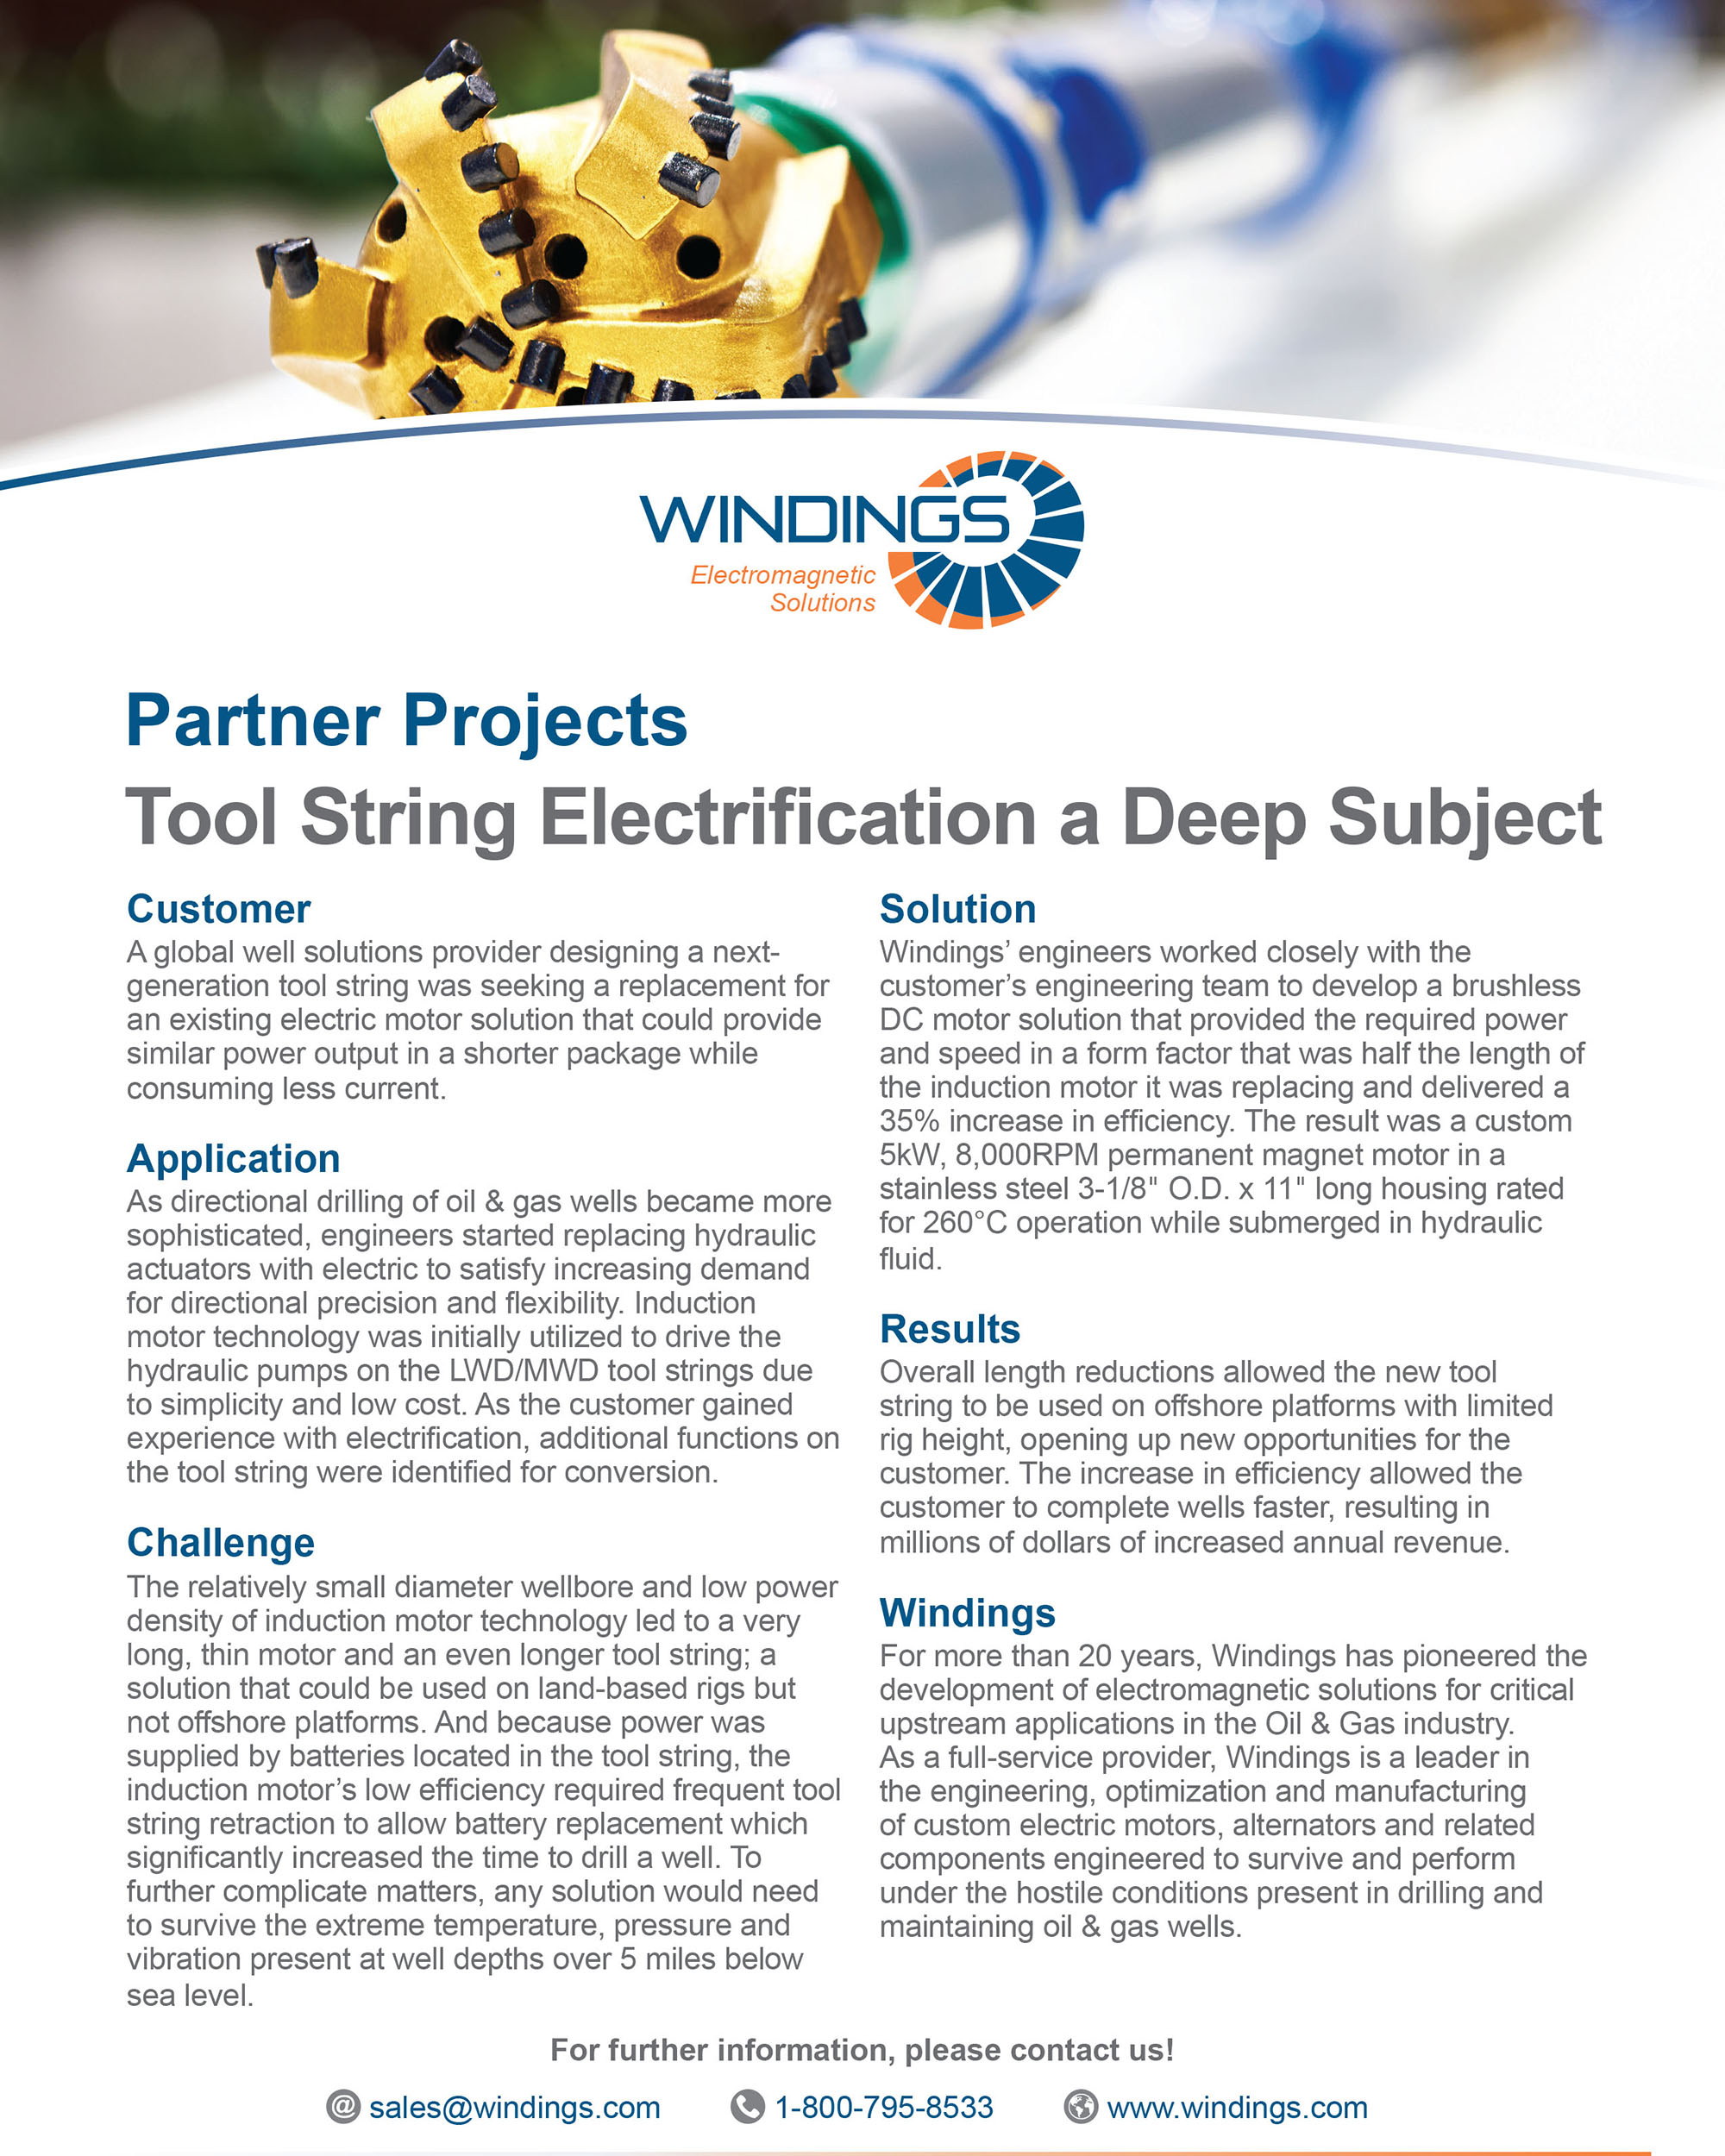 Partner Project - Tool String Electrification